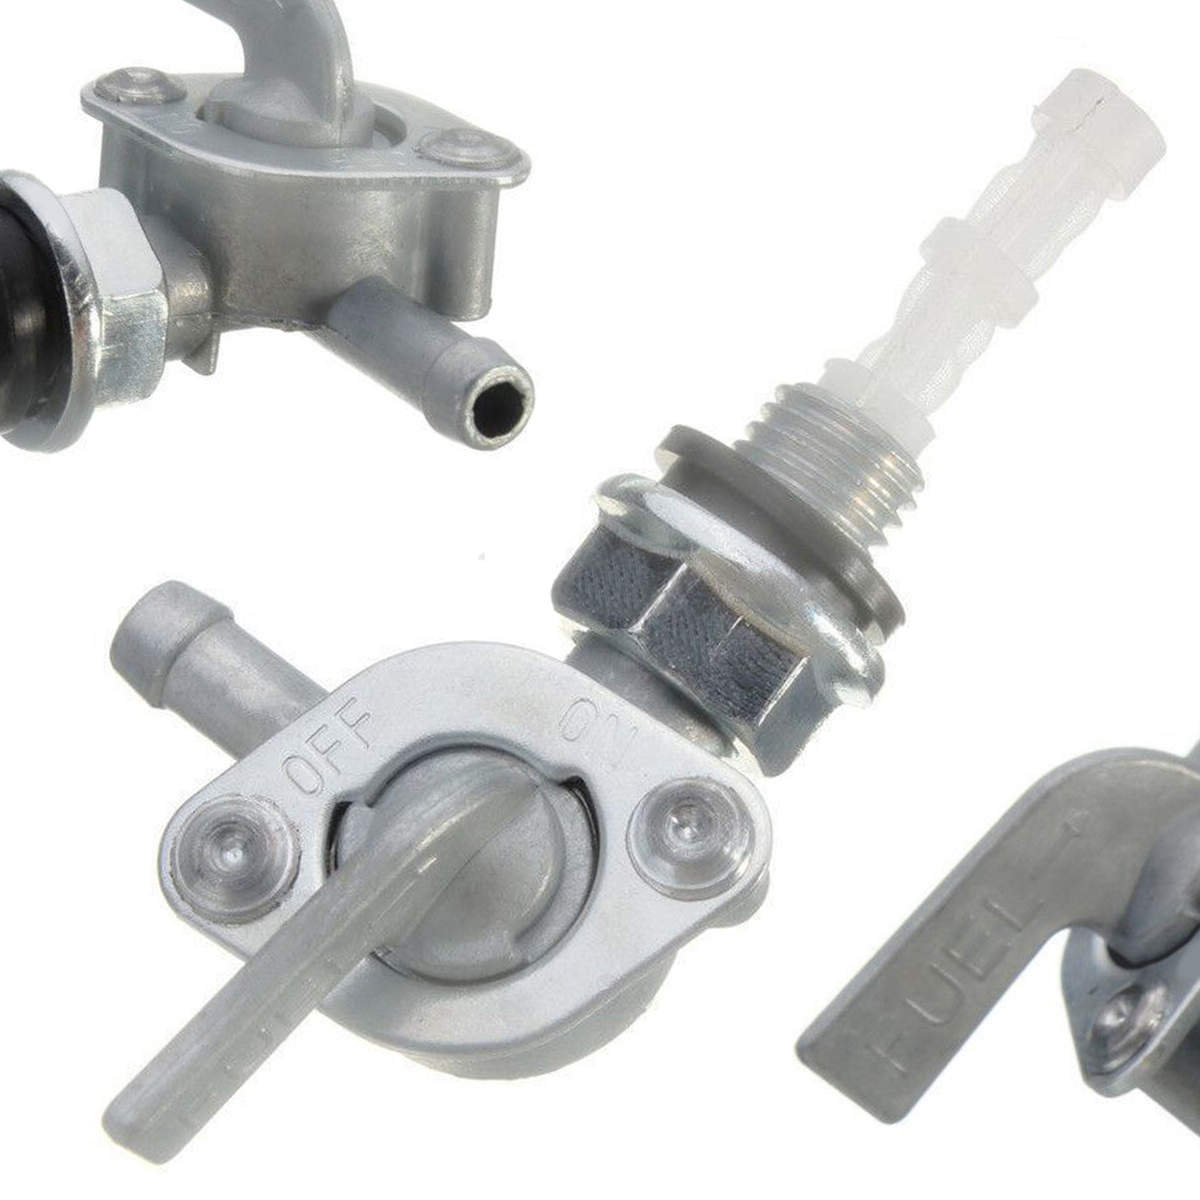 Fuel Shut Off On Off Valve Generator Gas Engine Tank Fuel Shut Off On/off Valve Useful Durable Strainer Replacement